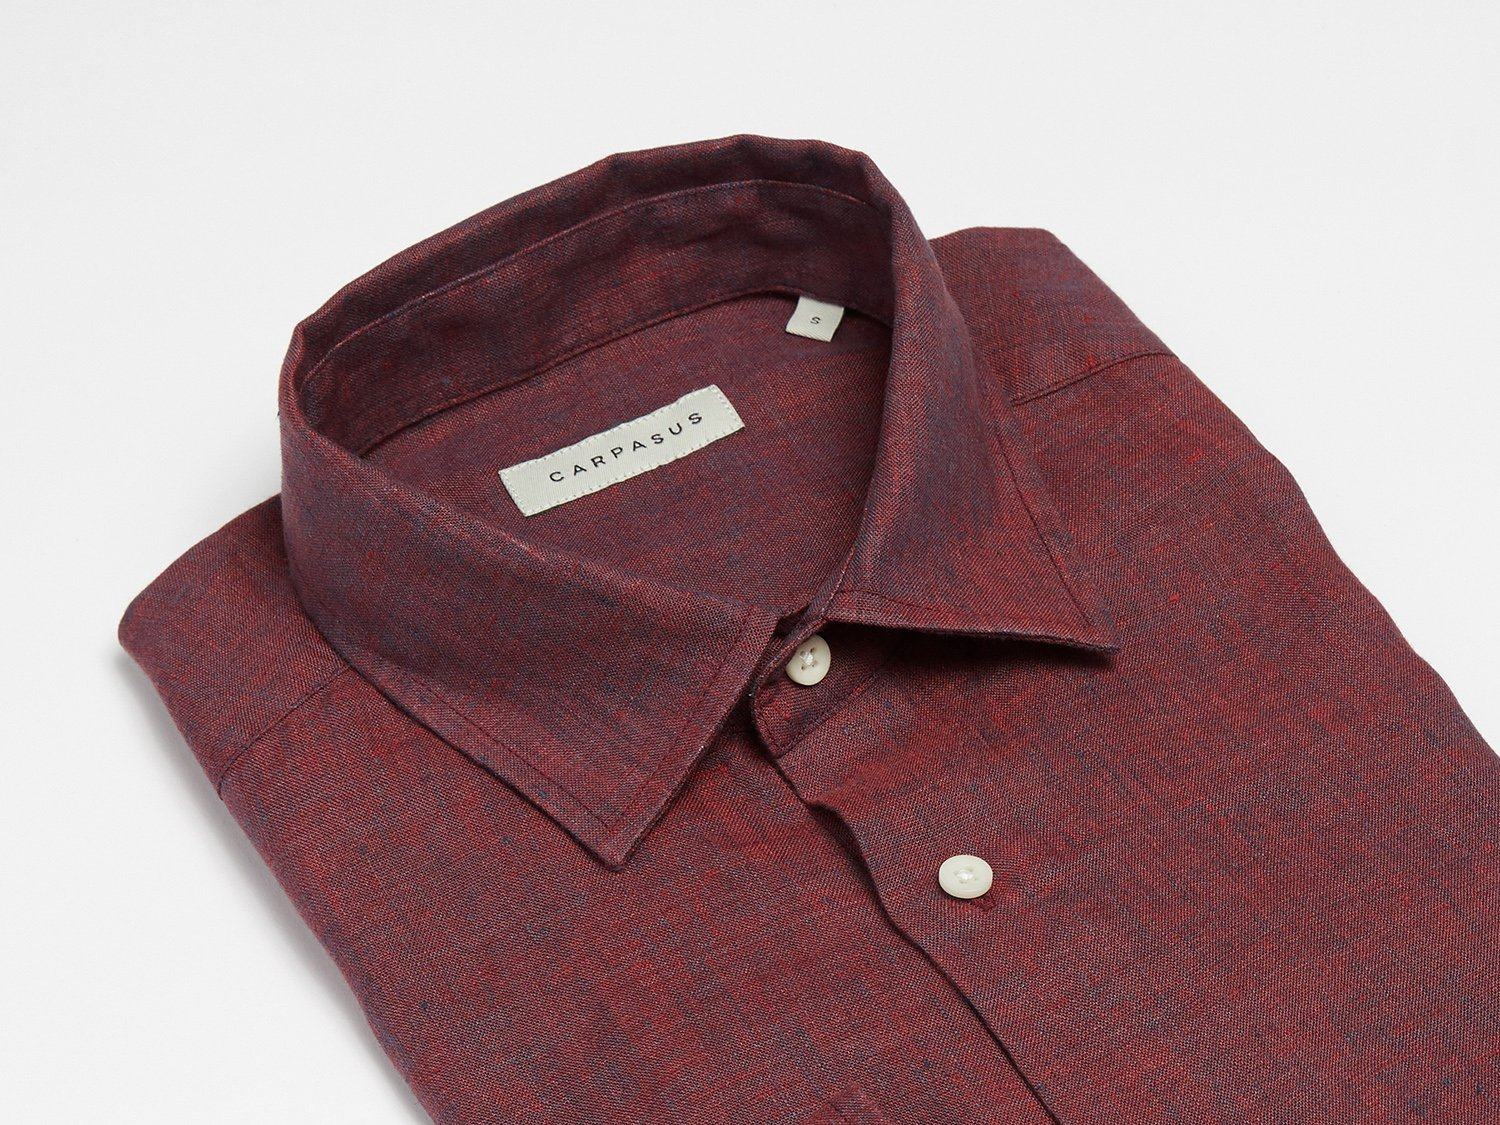 carpasus sustainable organic linen shirt semi casual single color bordeaux. Nachhaltiges Carpasus Hemd Semi Casual aus Bio Leinen in Bordeaux